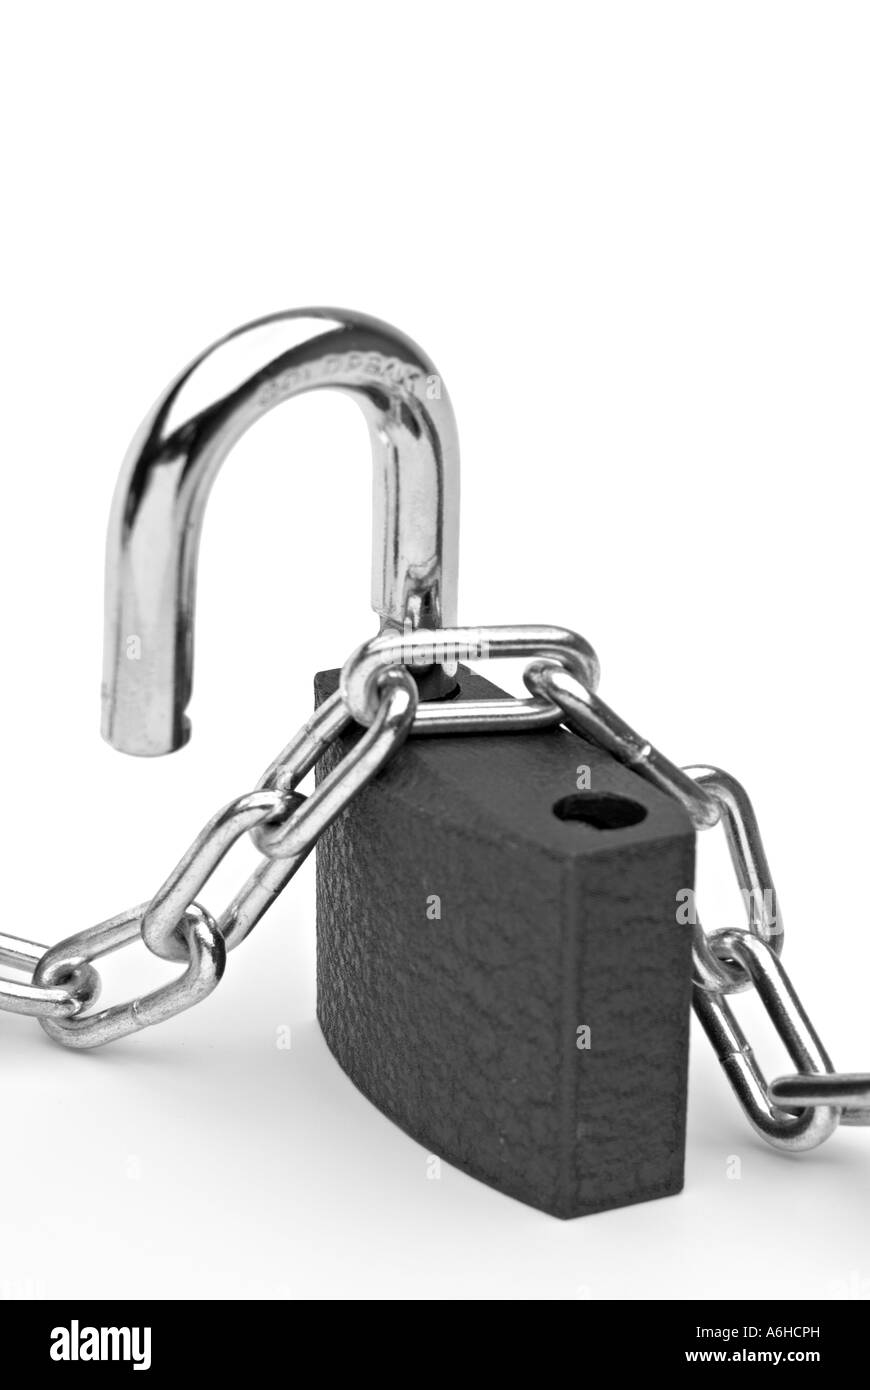 Lock and chain in black and white - Stock Image